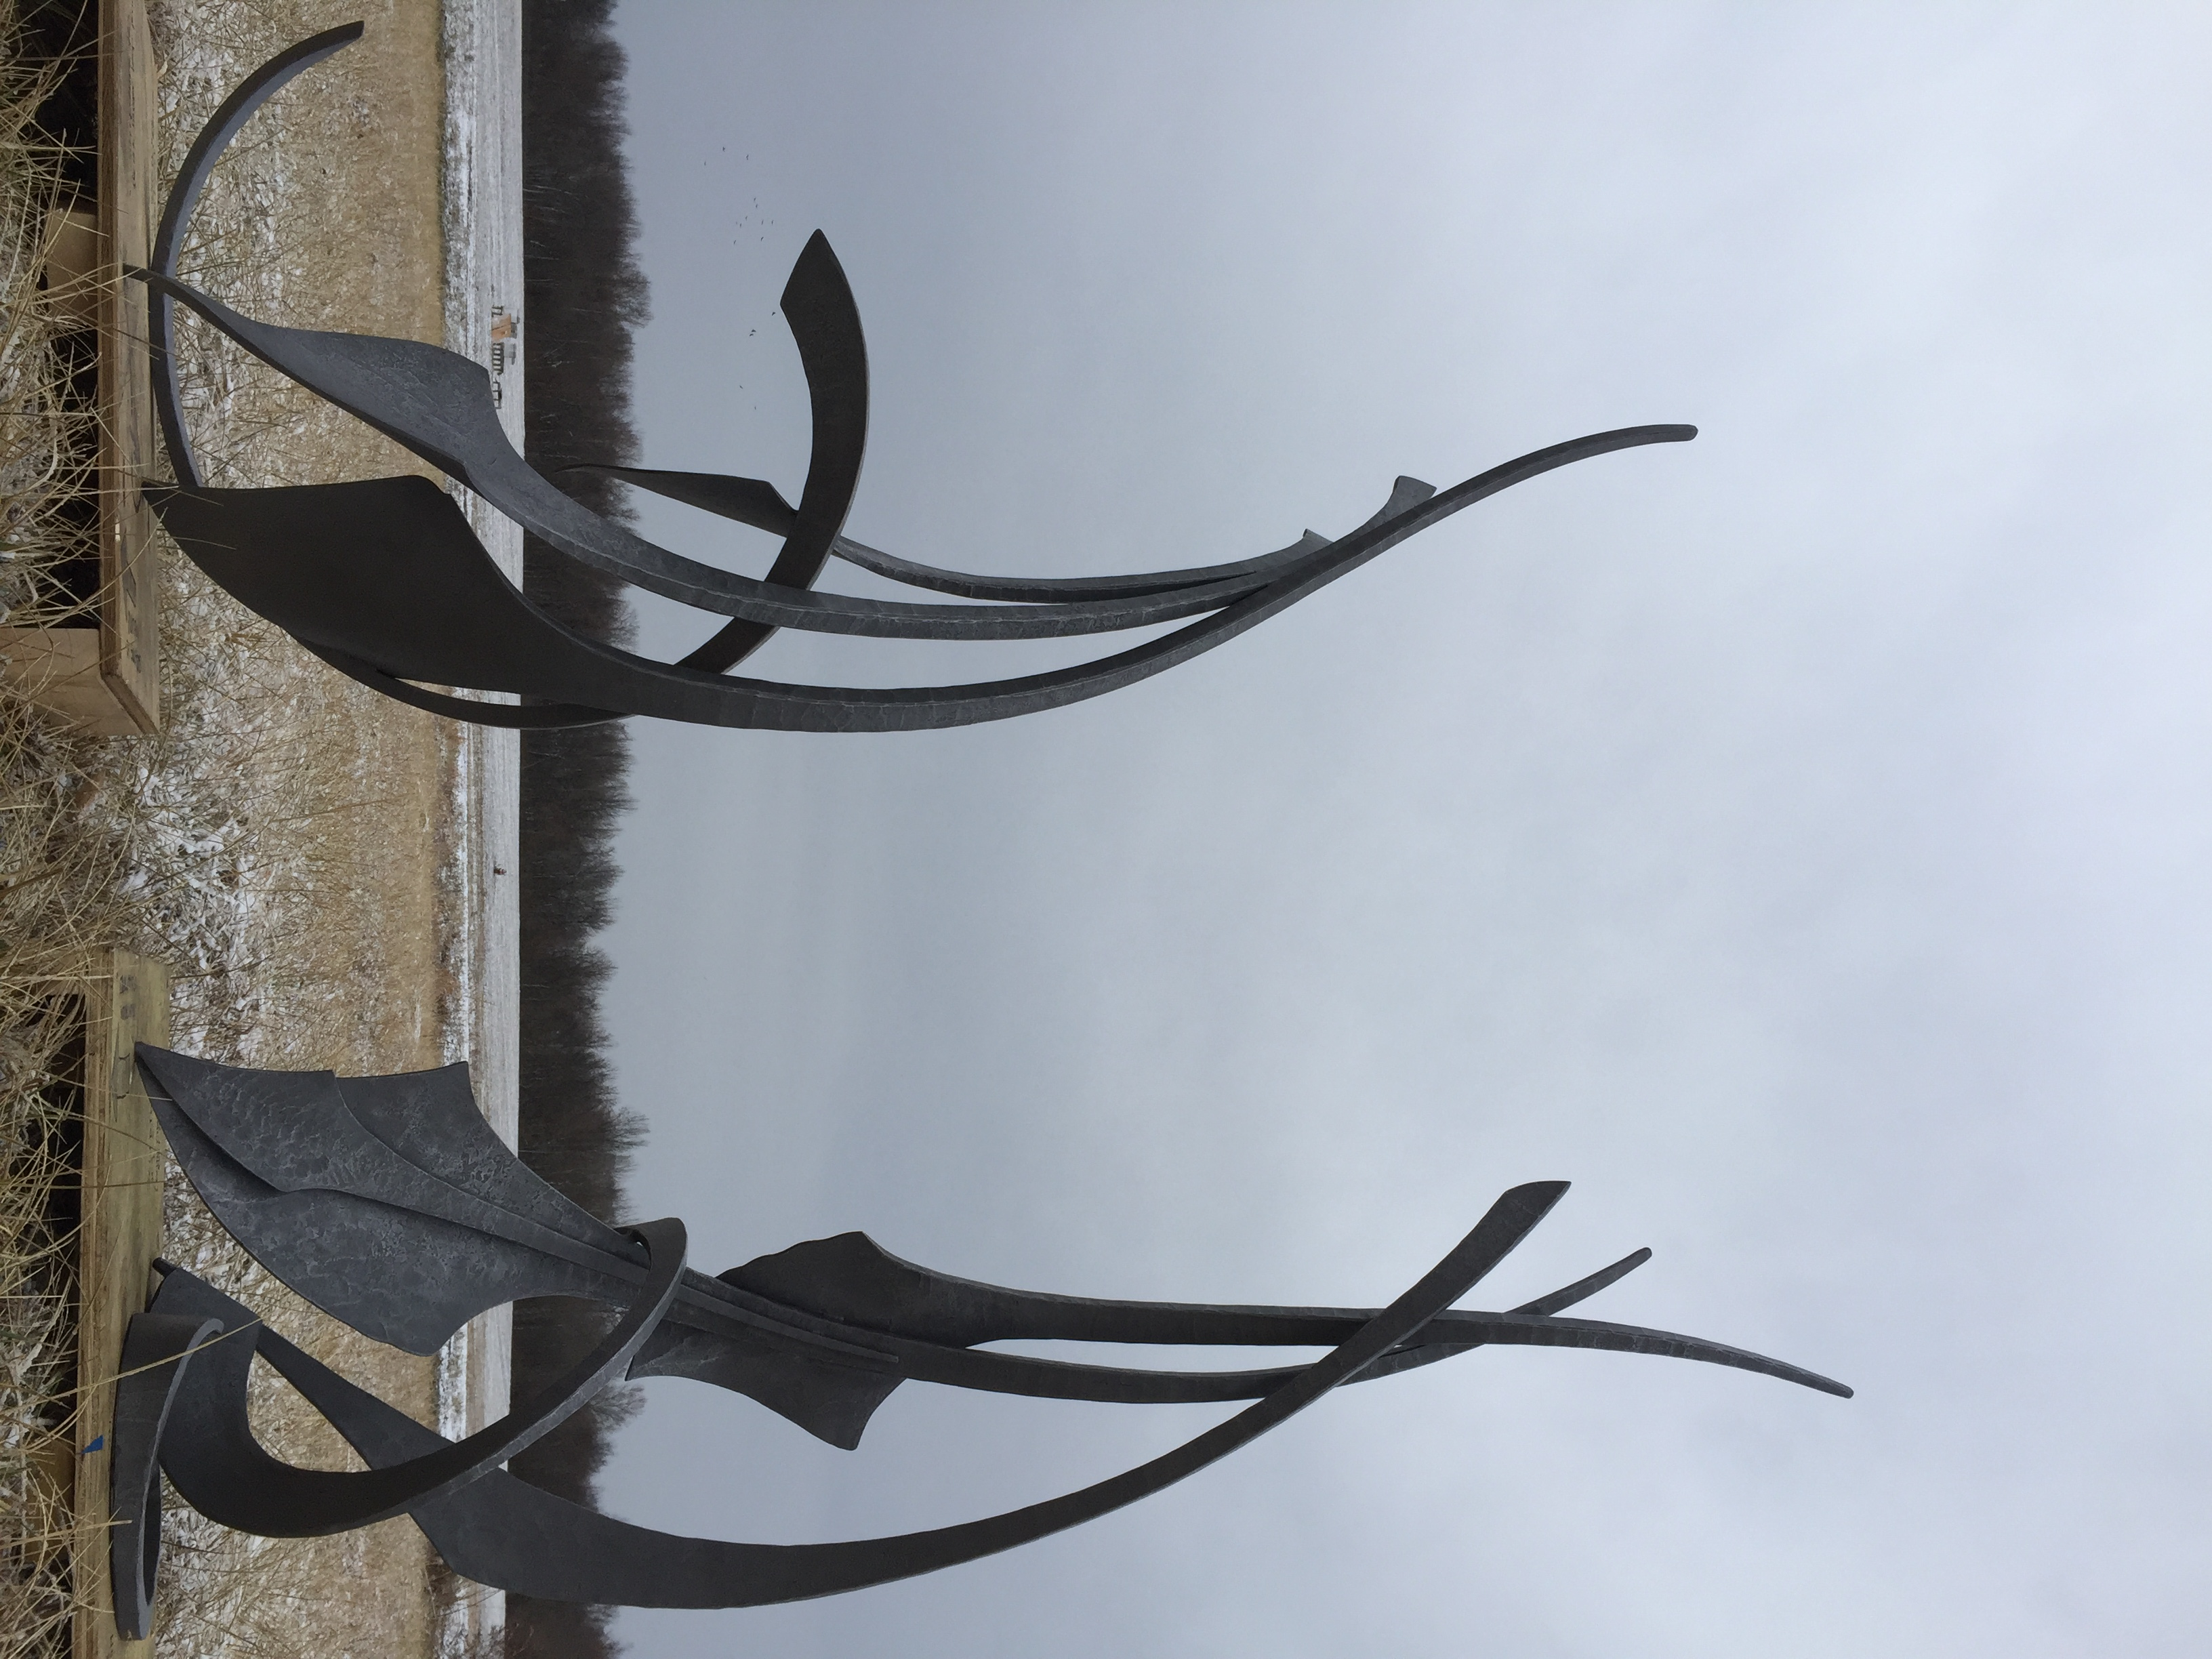 The Barton Sculptures